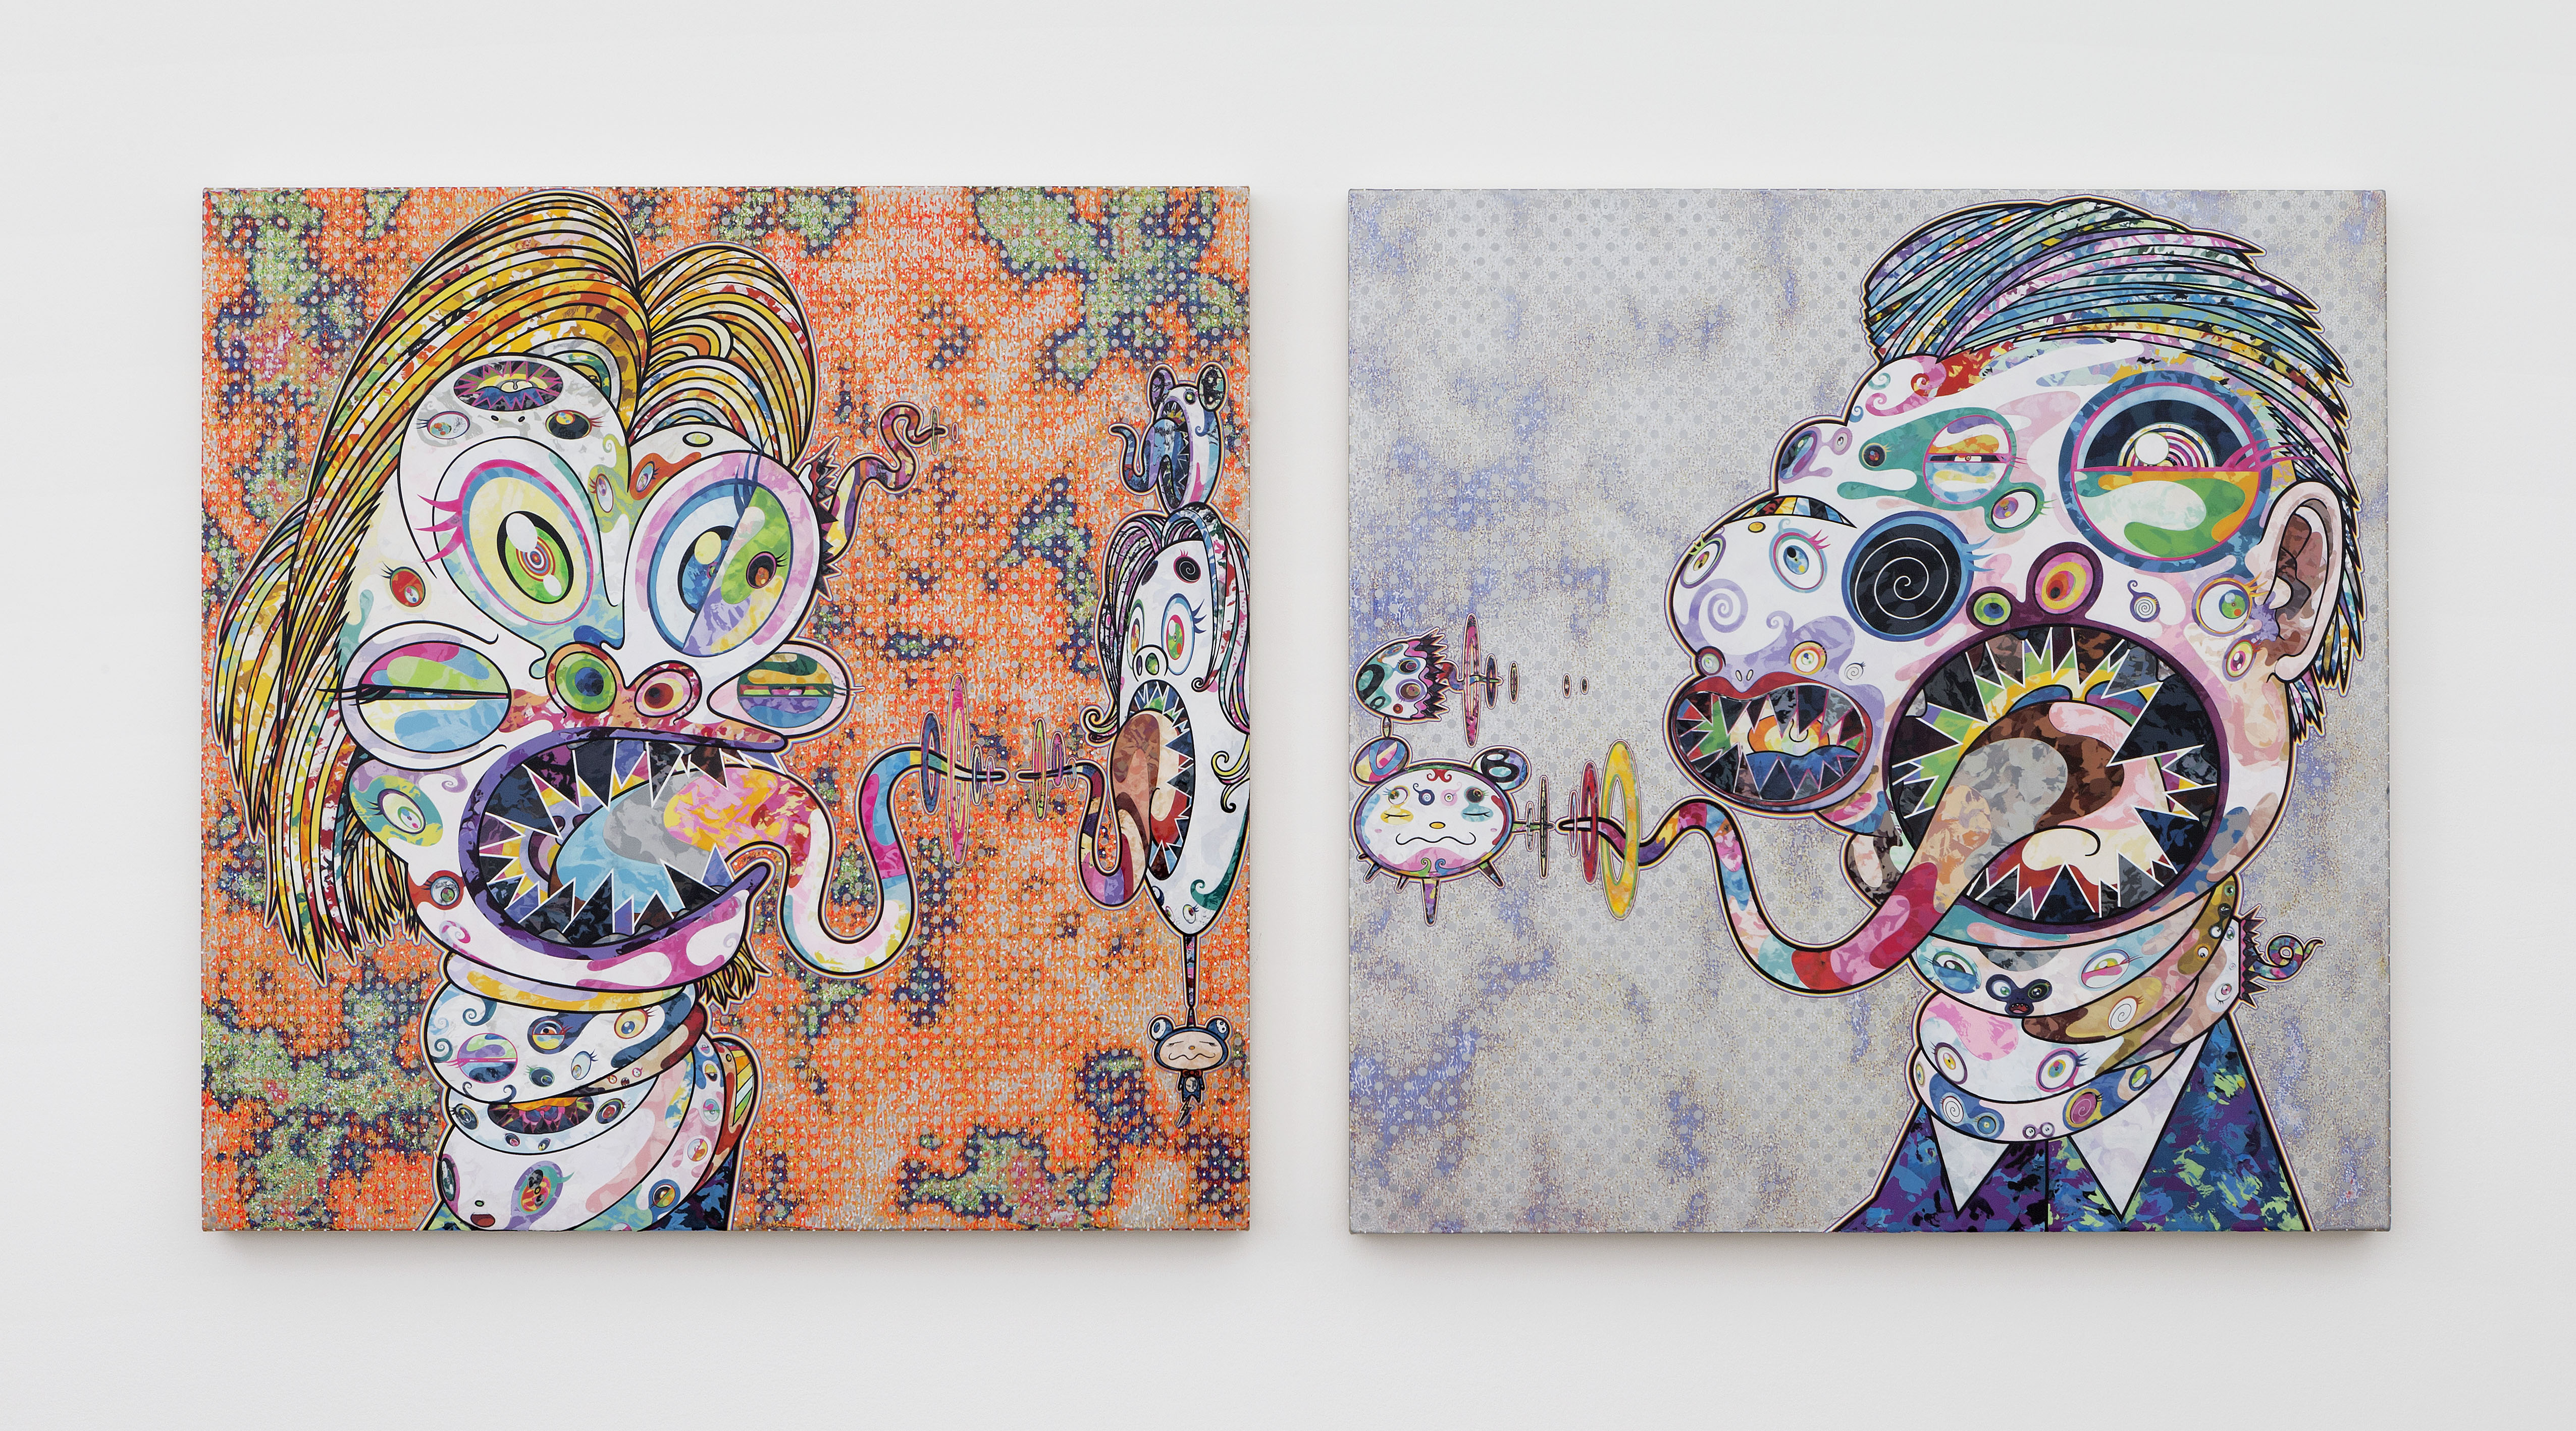 Homage to Francis Bacon (Study for Head of Isabel Rawsthorne and George Dyer), 2016 Foto: Claire Dorn © 2016 Takashi Murakami/Kaikai Kiki Co., Ltd. All Rights Reserved. Courtesy Galerie Perrotin